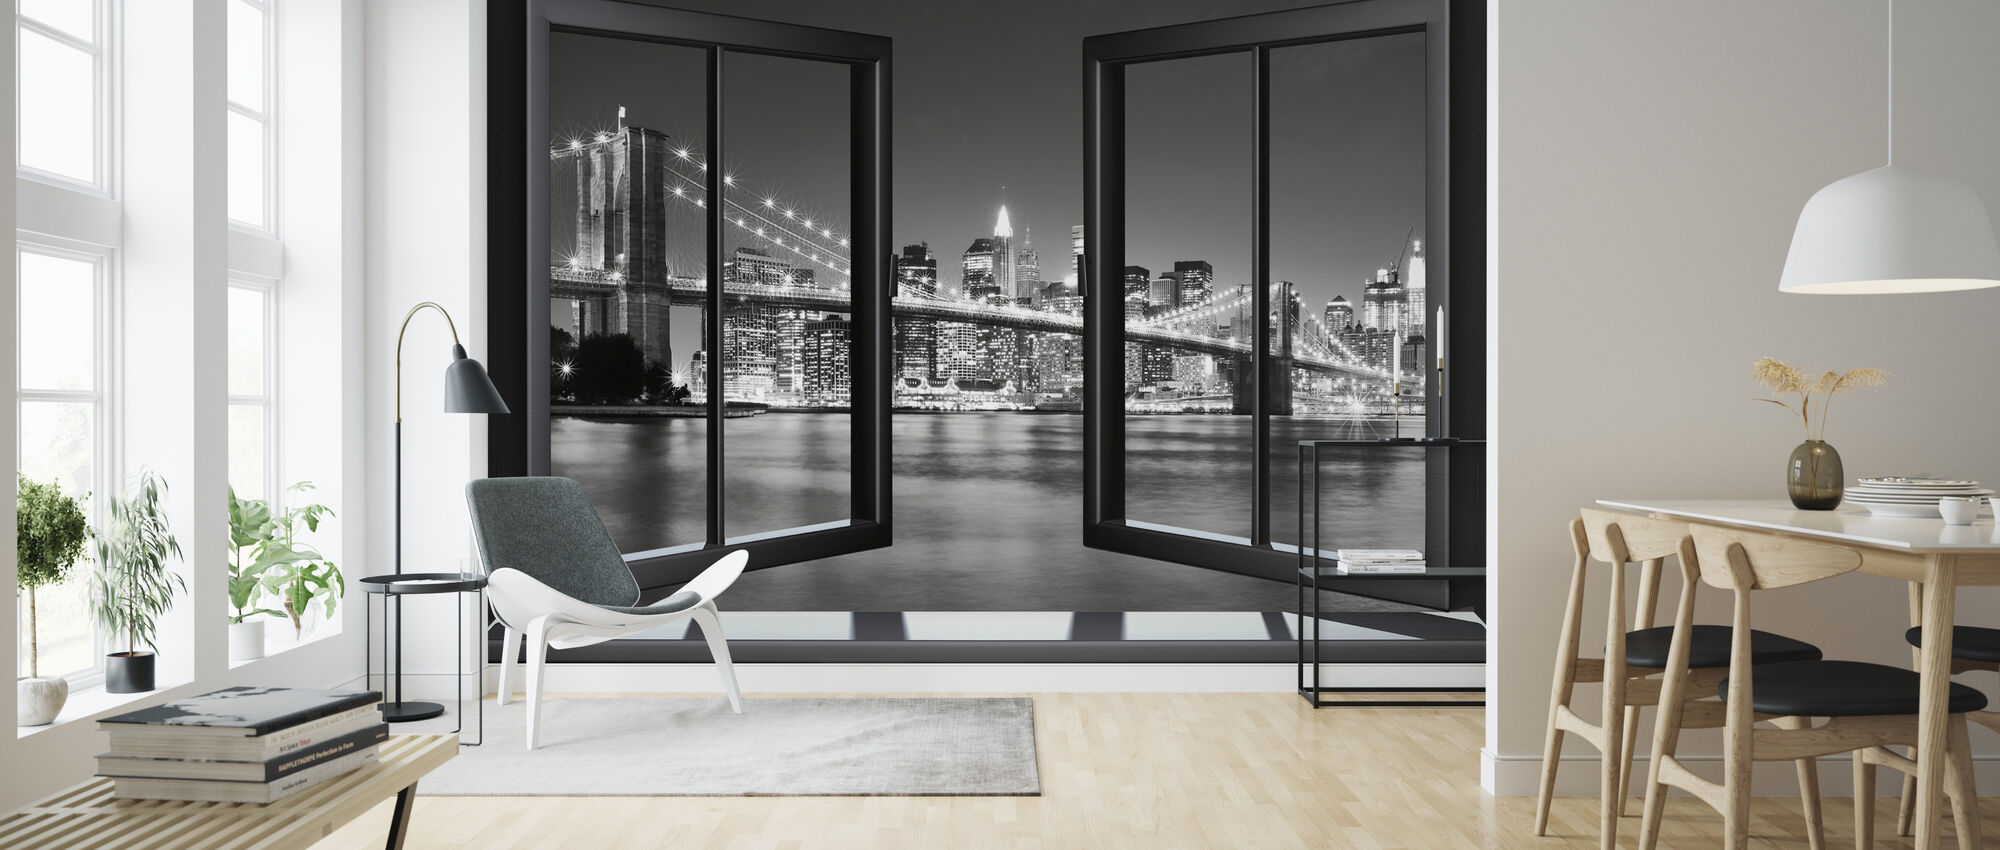 Bright Brooklyn Bridge Through Window - Wallpaper - Living Room